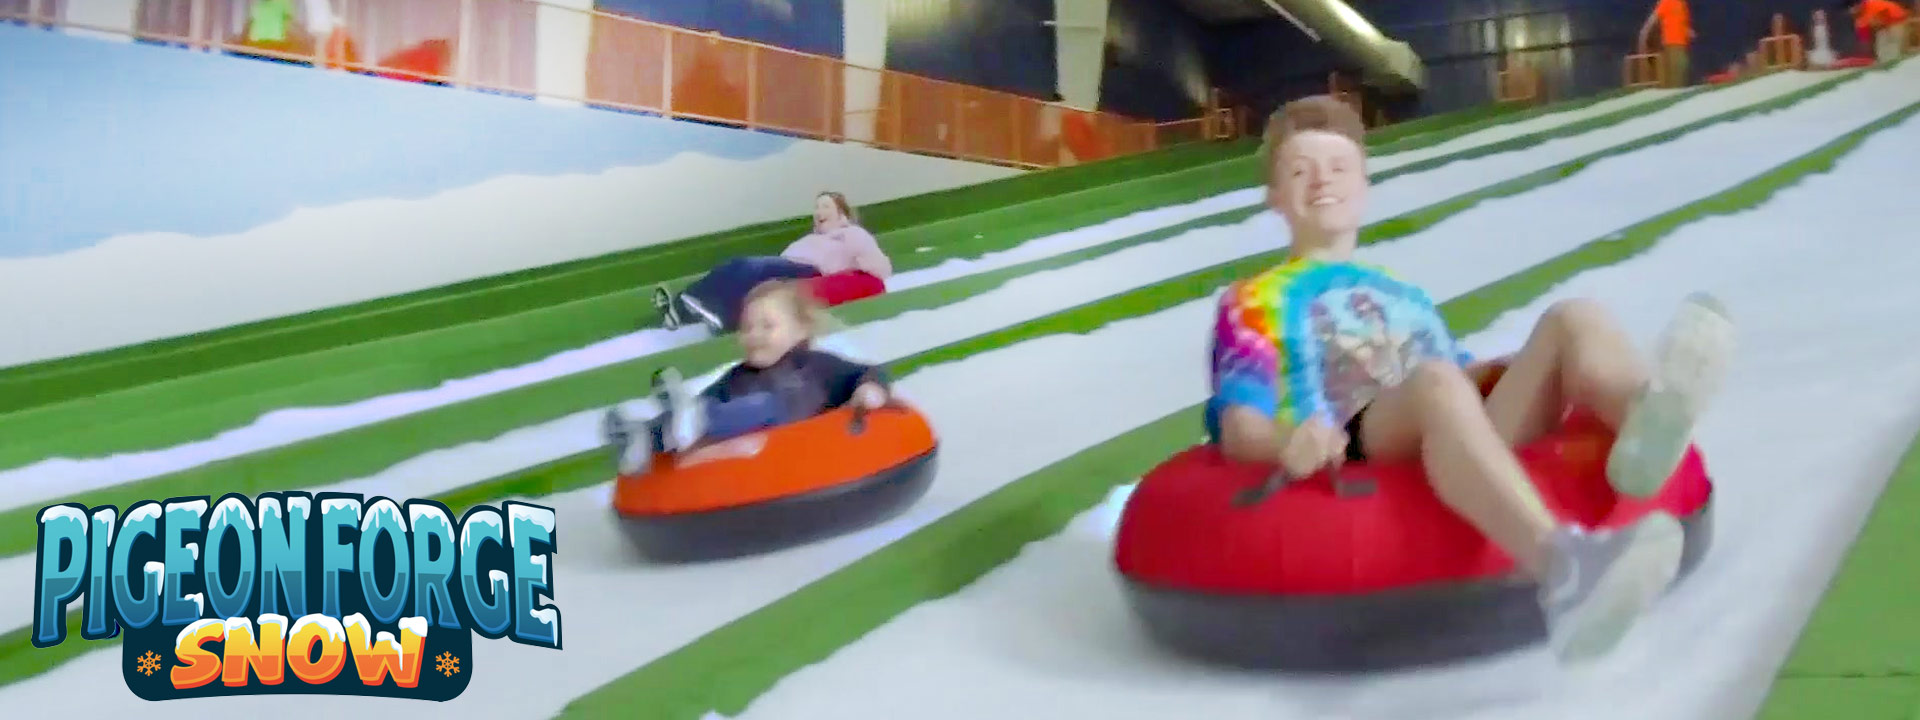 Year Round Snow Tubing Pigeon Forge Snow Pigeon Forge